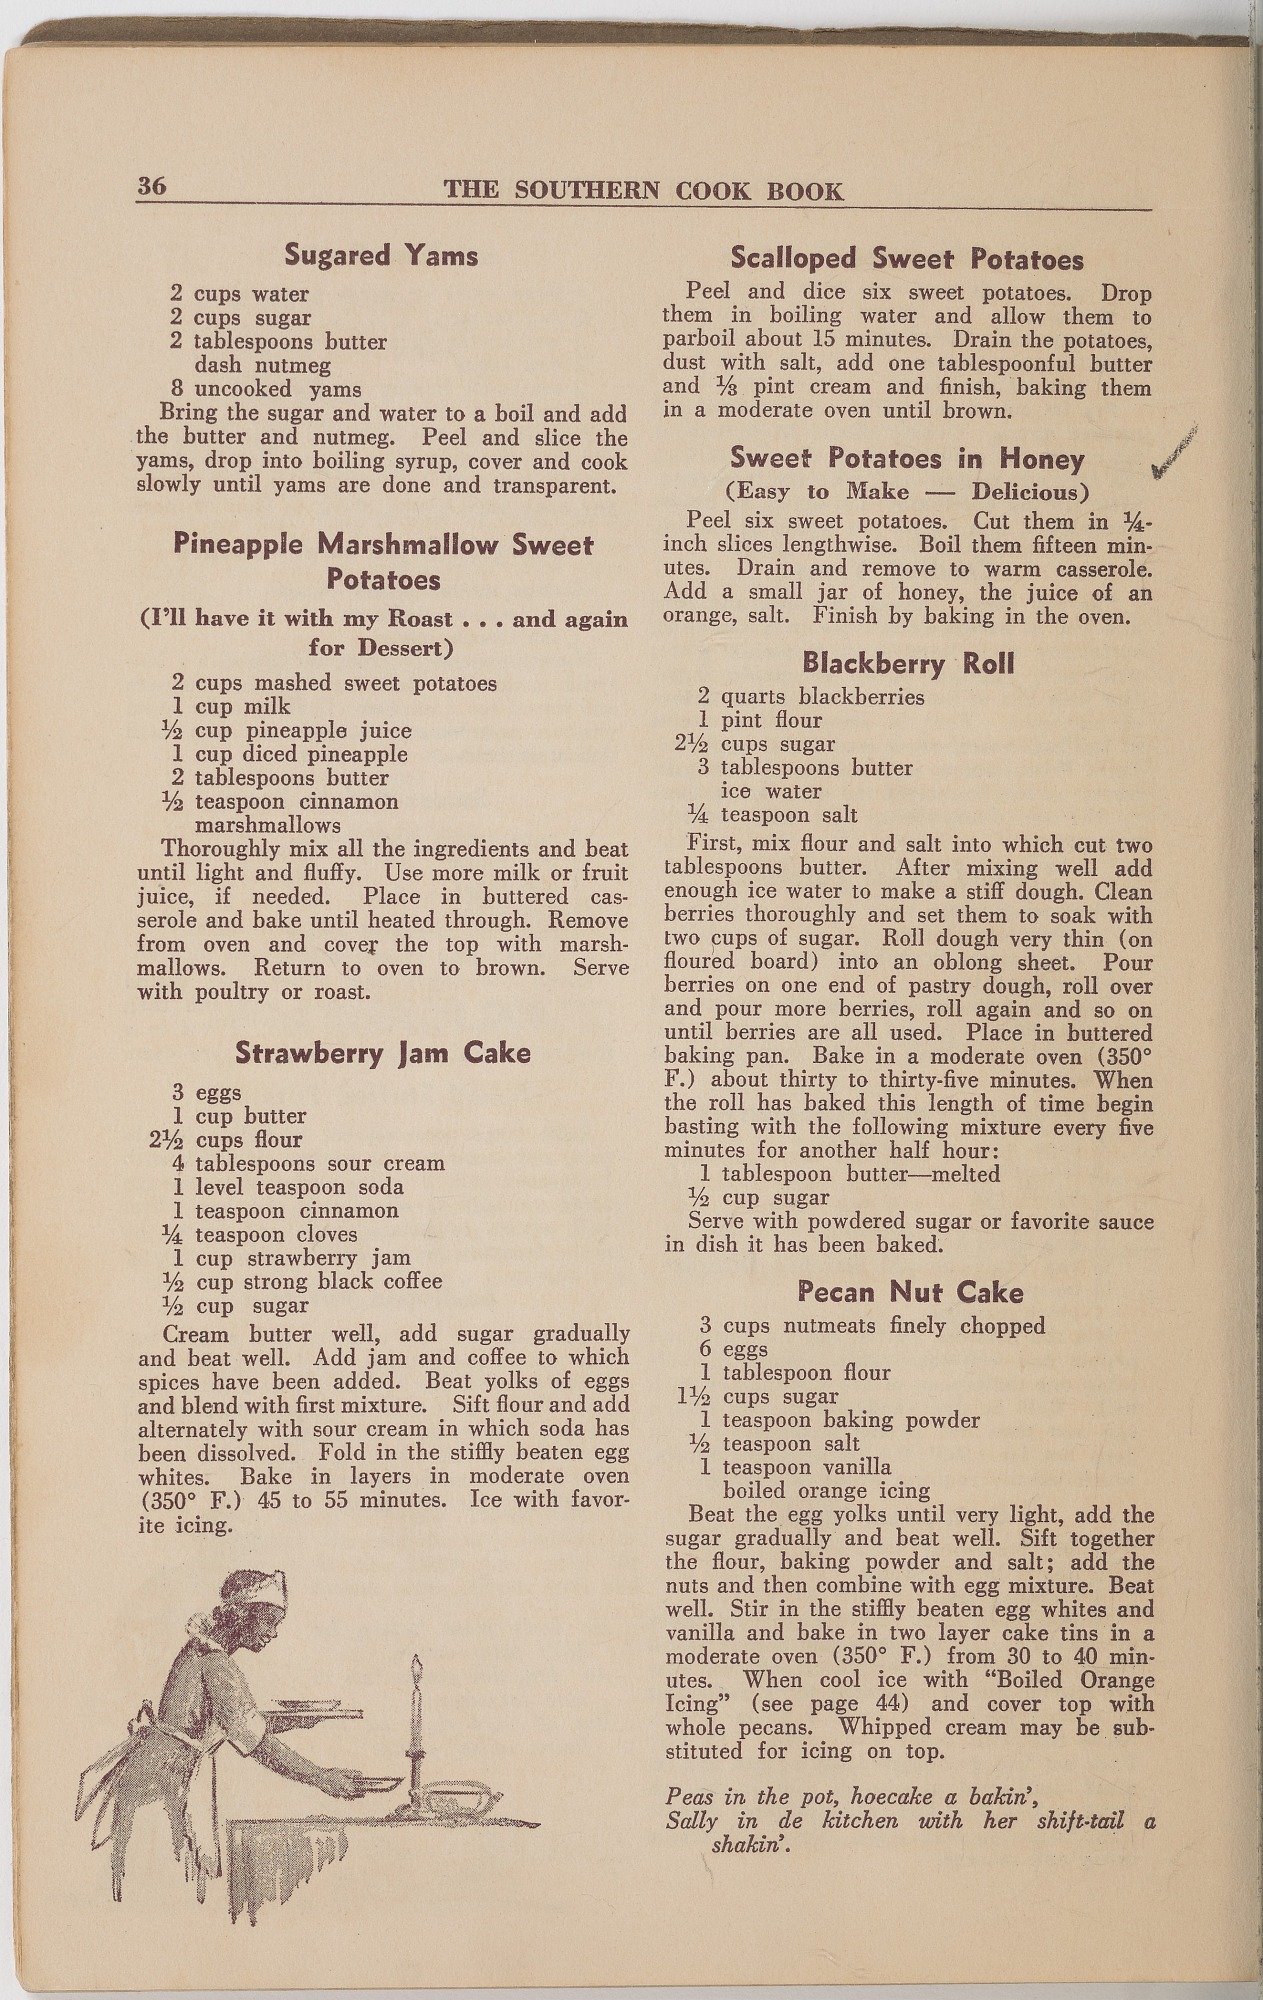 View <I>Southern Cook Book of Fine Old Dixie Recipes</I> digital asset number 38